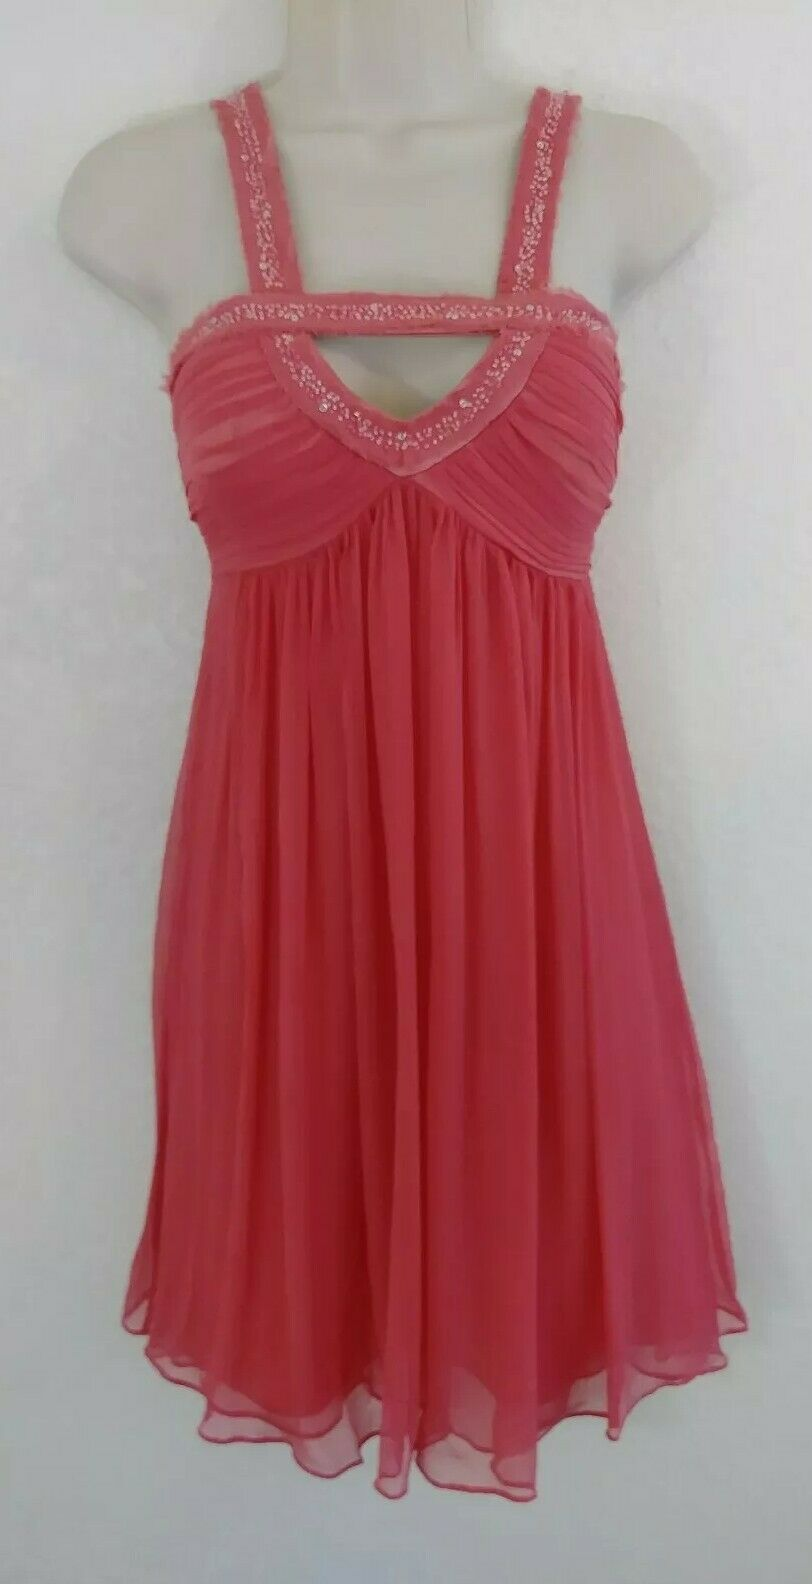 NWT BCBGMAXAZRIA 2 DRESS Pink knee length lined silk beads prom non visable flaw